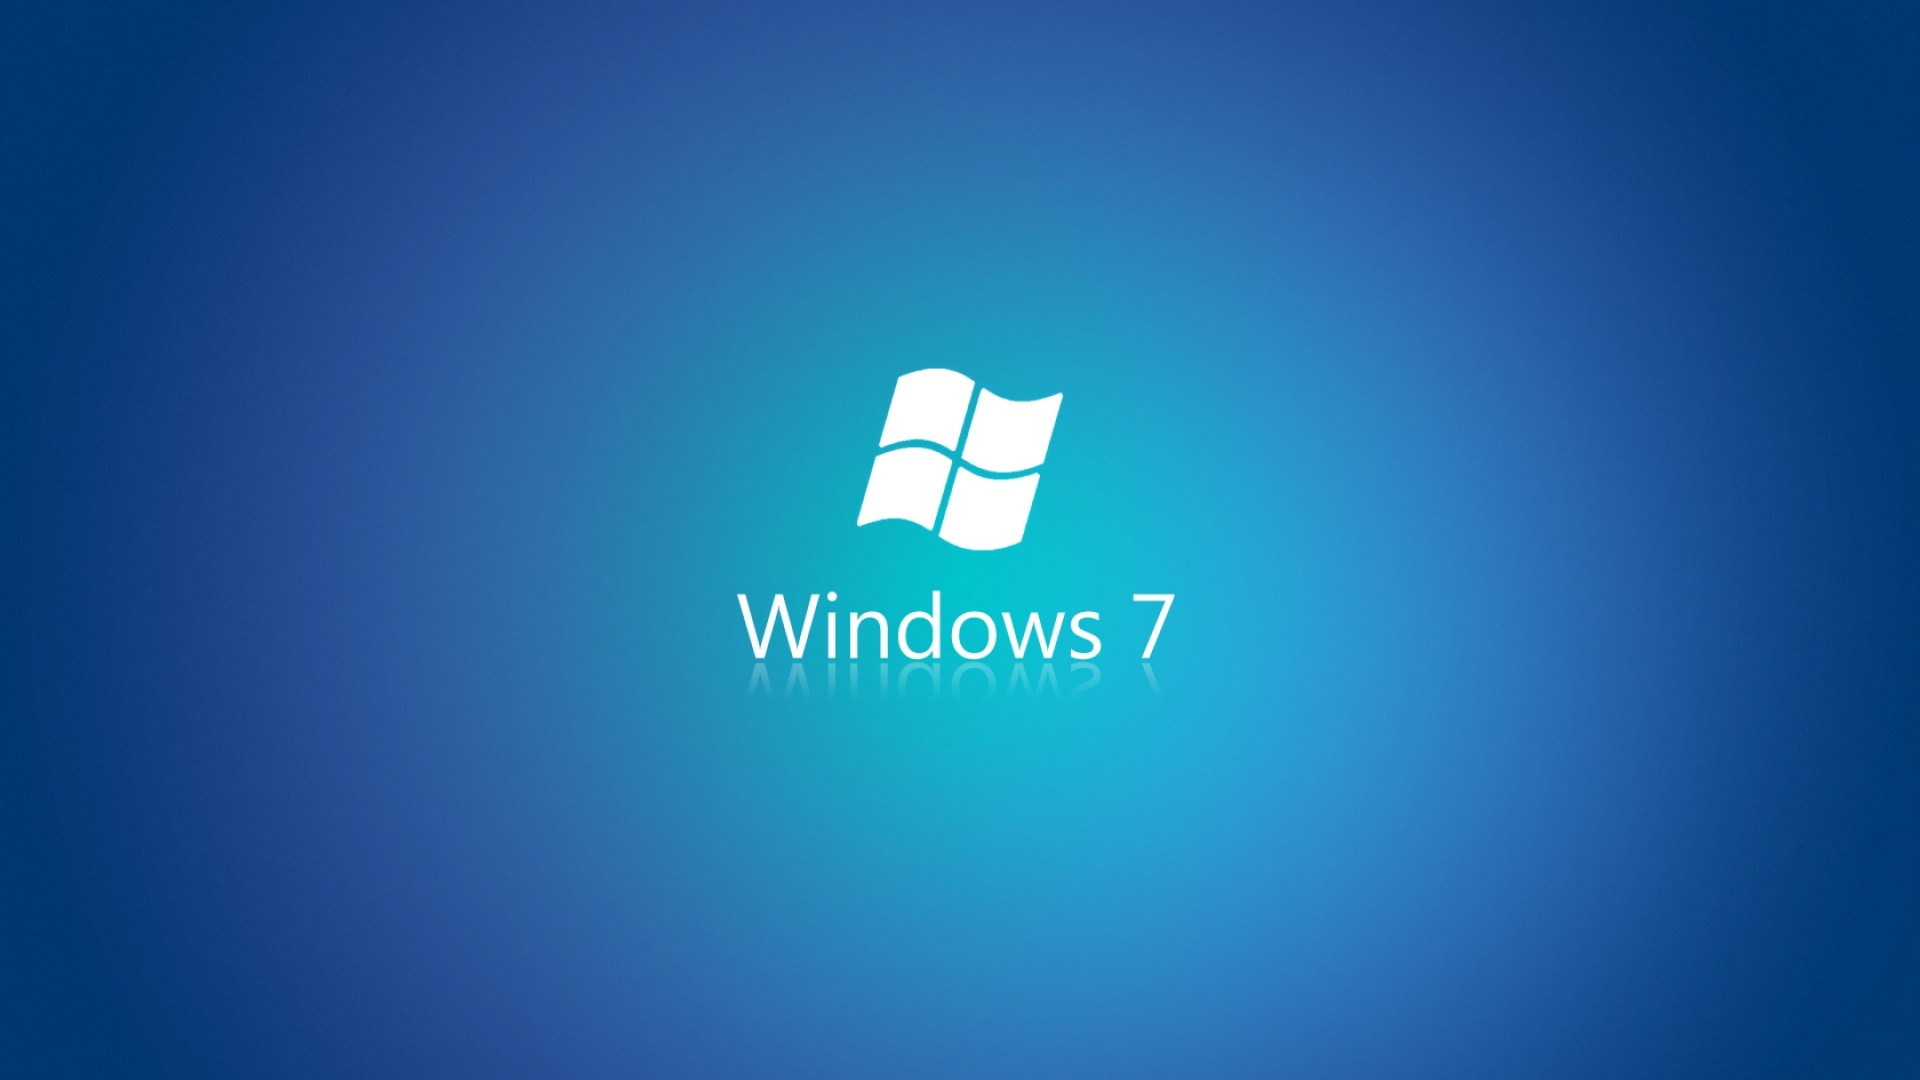 Windows 7 Hd Wallpaper 76 Pictures